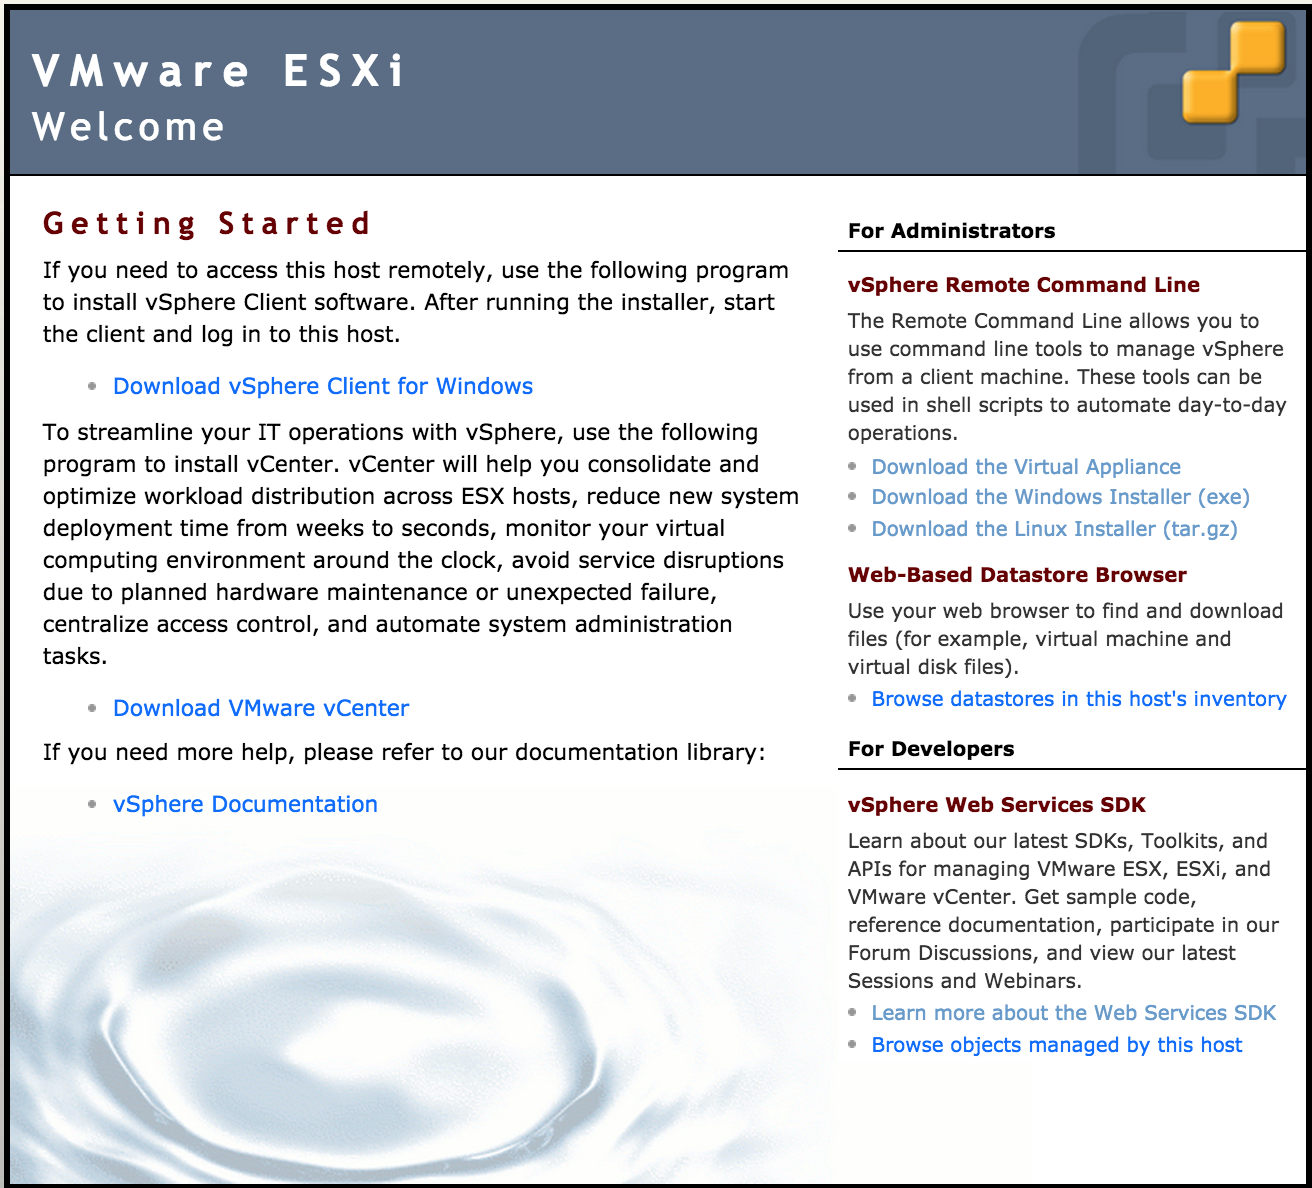 Getting Started with vSphere EXSi — The Missing Tutorial